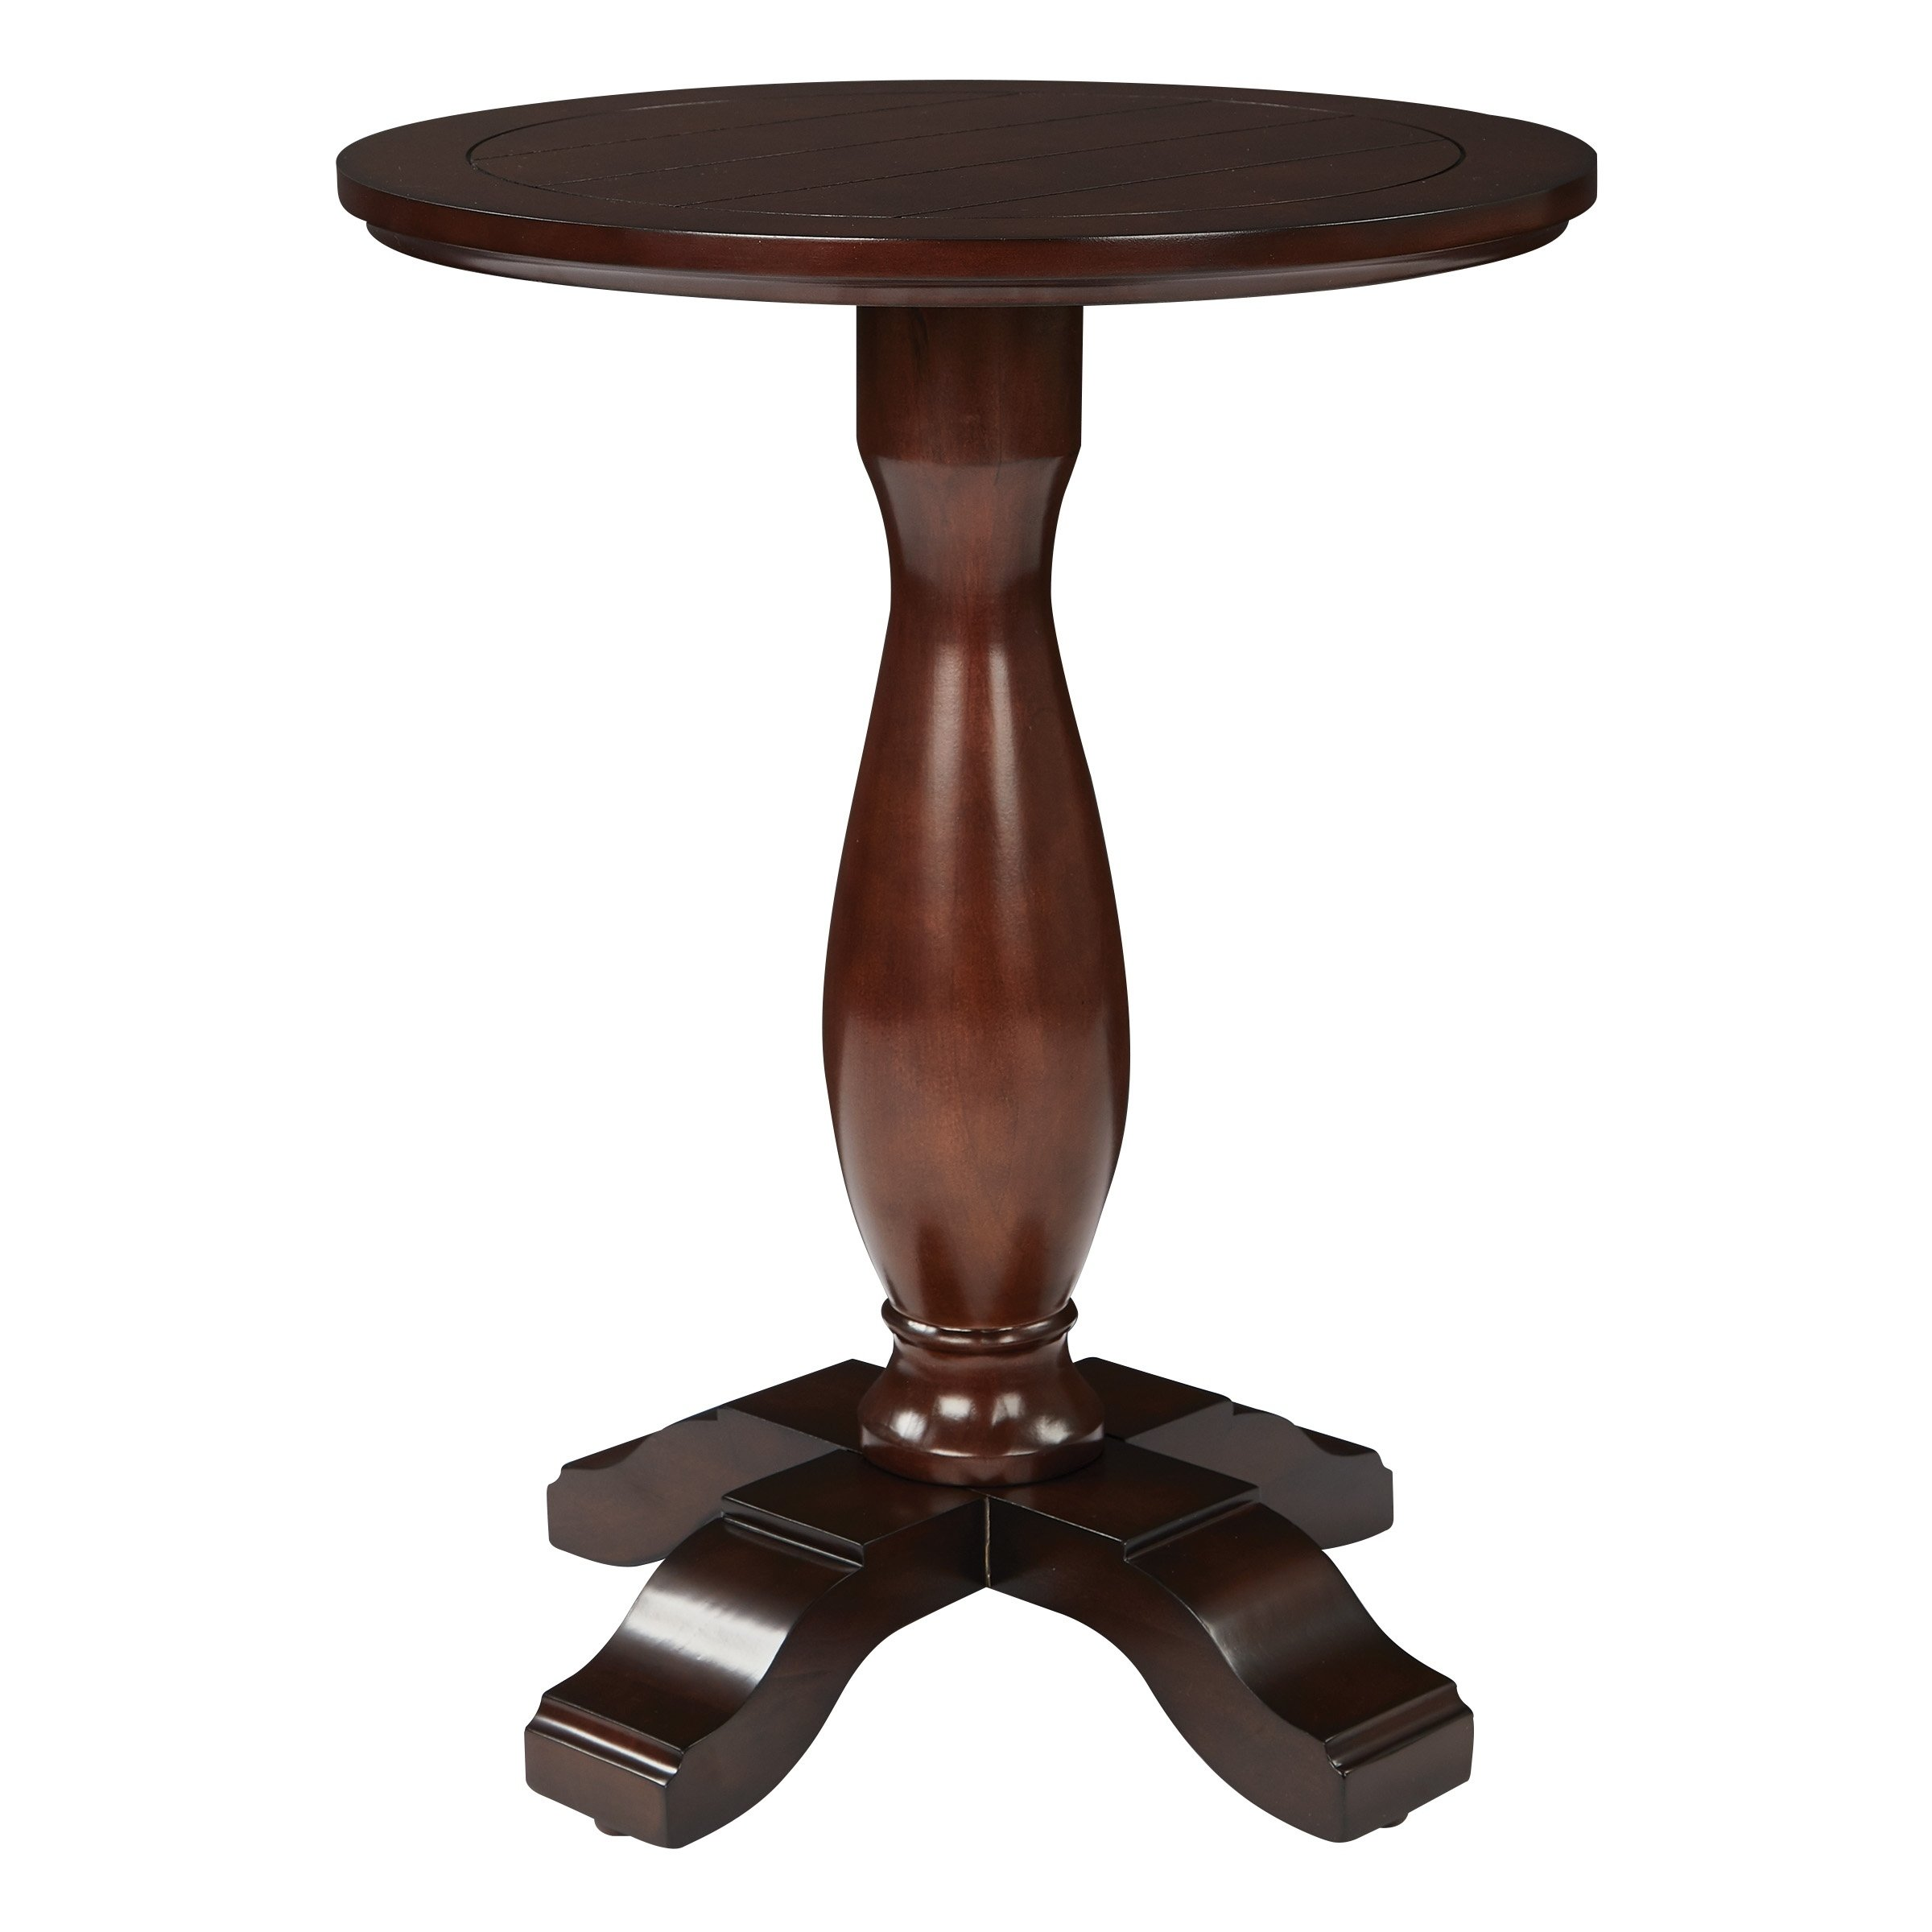 osp home furnishings annalise round accent table espresso ave six free shipping today outdoor side tall bedside ideas tennis rubber target patio set pedestal pier one imports